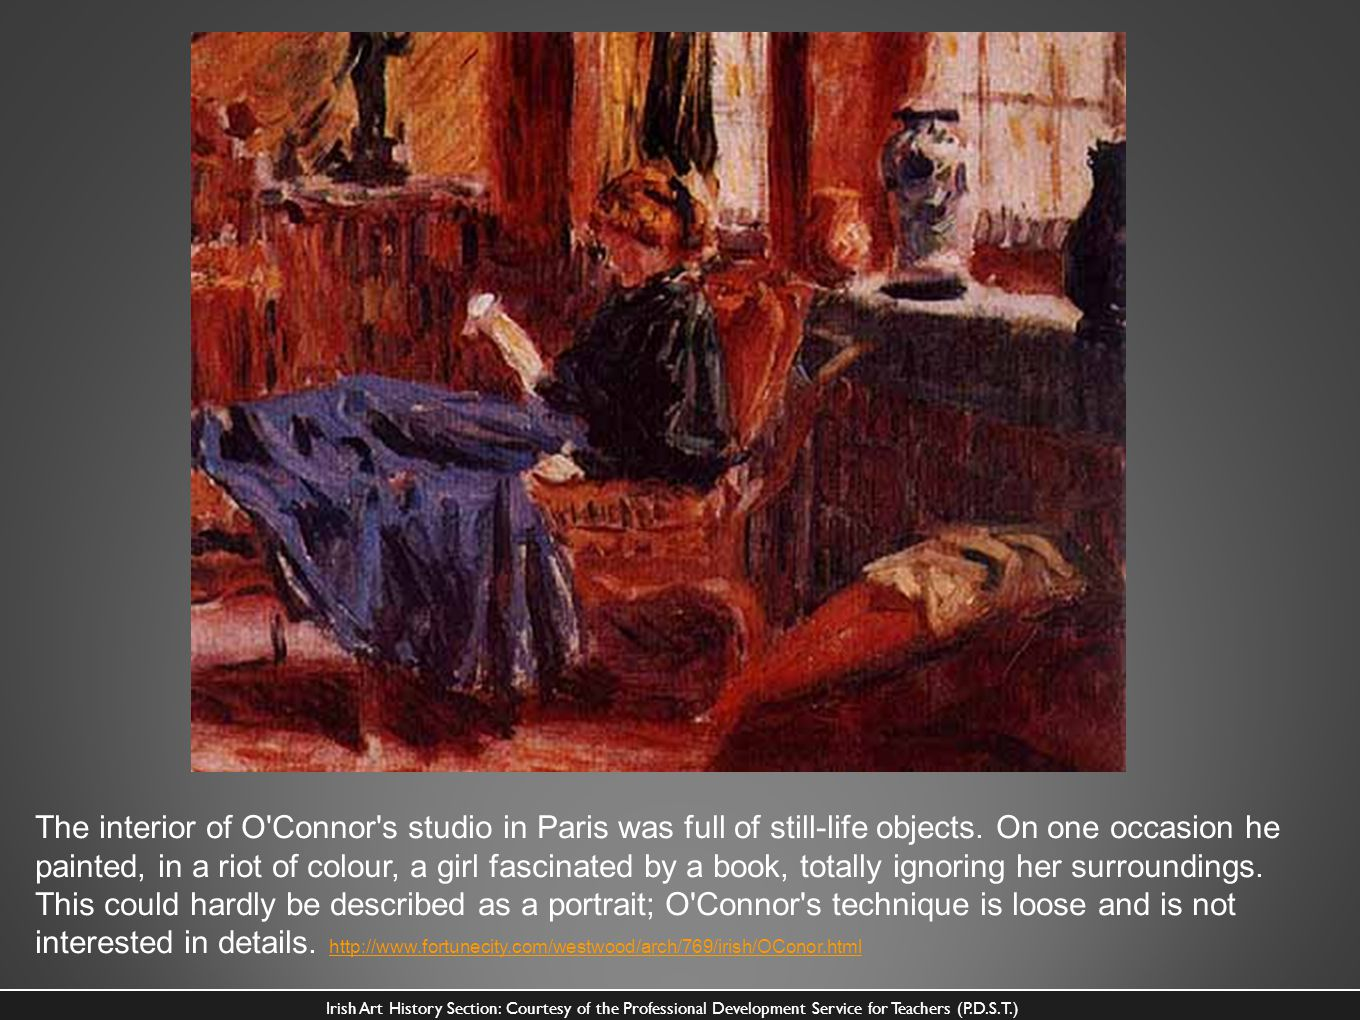 The interior of O Connor s studio in Paris was full of still-life objects. On one occasion he painted, in a riot of colour, a girl fascinated by a book, totally ignoring her surroundings. This could hardly be described as a portrait; O Connor s technique is loose and is not interested in details.